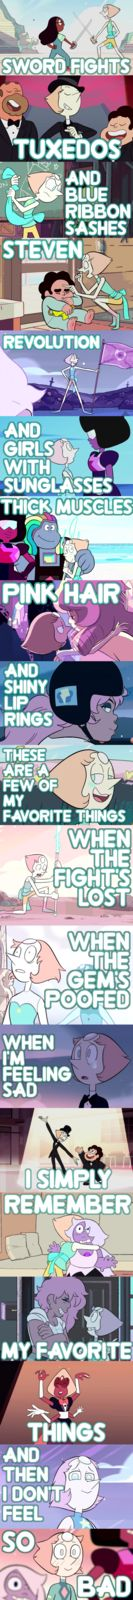 Pearl's Favorite Things